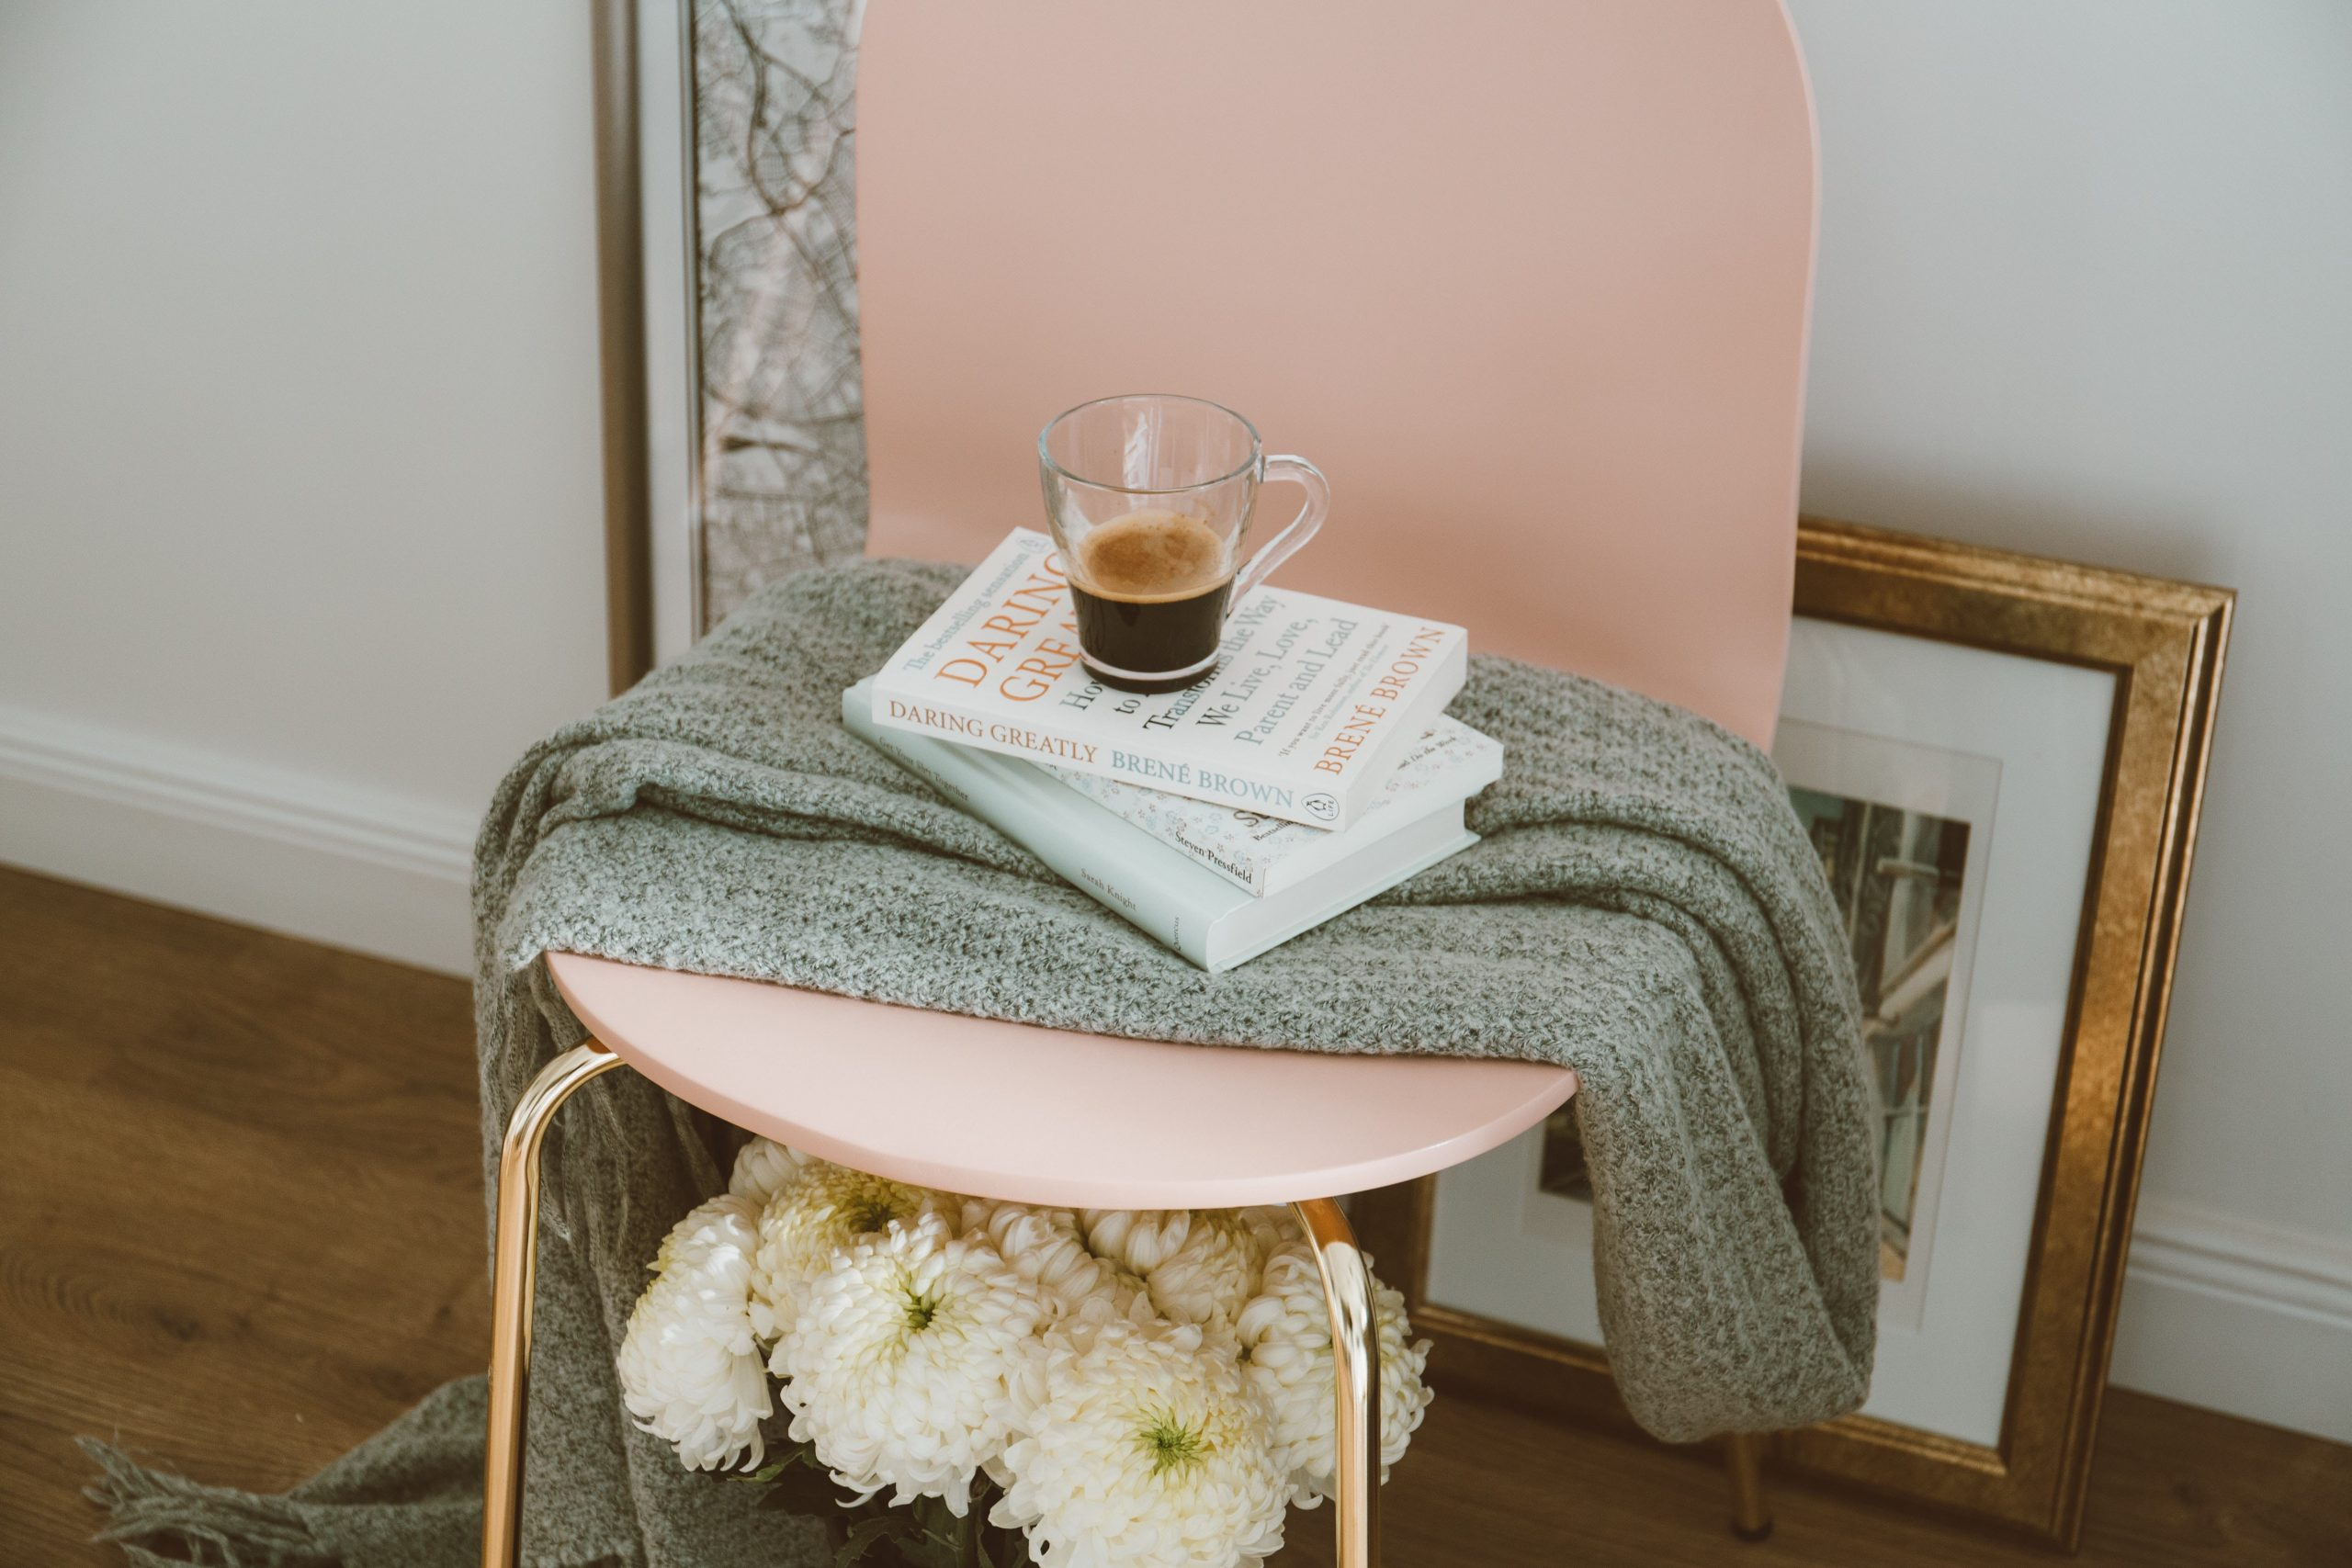 photo of a coffee cup on books on a blanket on a chair representing self care. Something that therapists are bad at. Meet with online therapist melissa russiano who offers therapy for therapists in ohio, therapy for therapists in pennsylvania, therapy for therapist in tennessee, therapy for therapists in florida, and therapy for therapists in California to treat therapist burnout